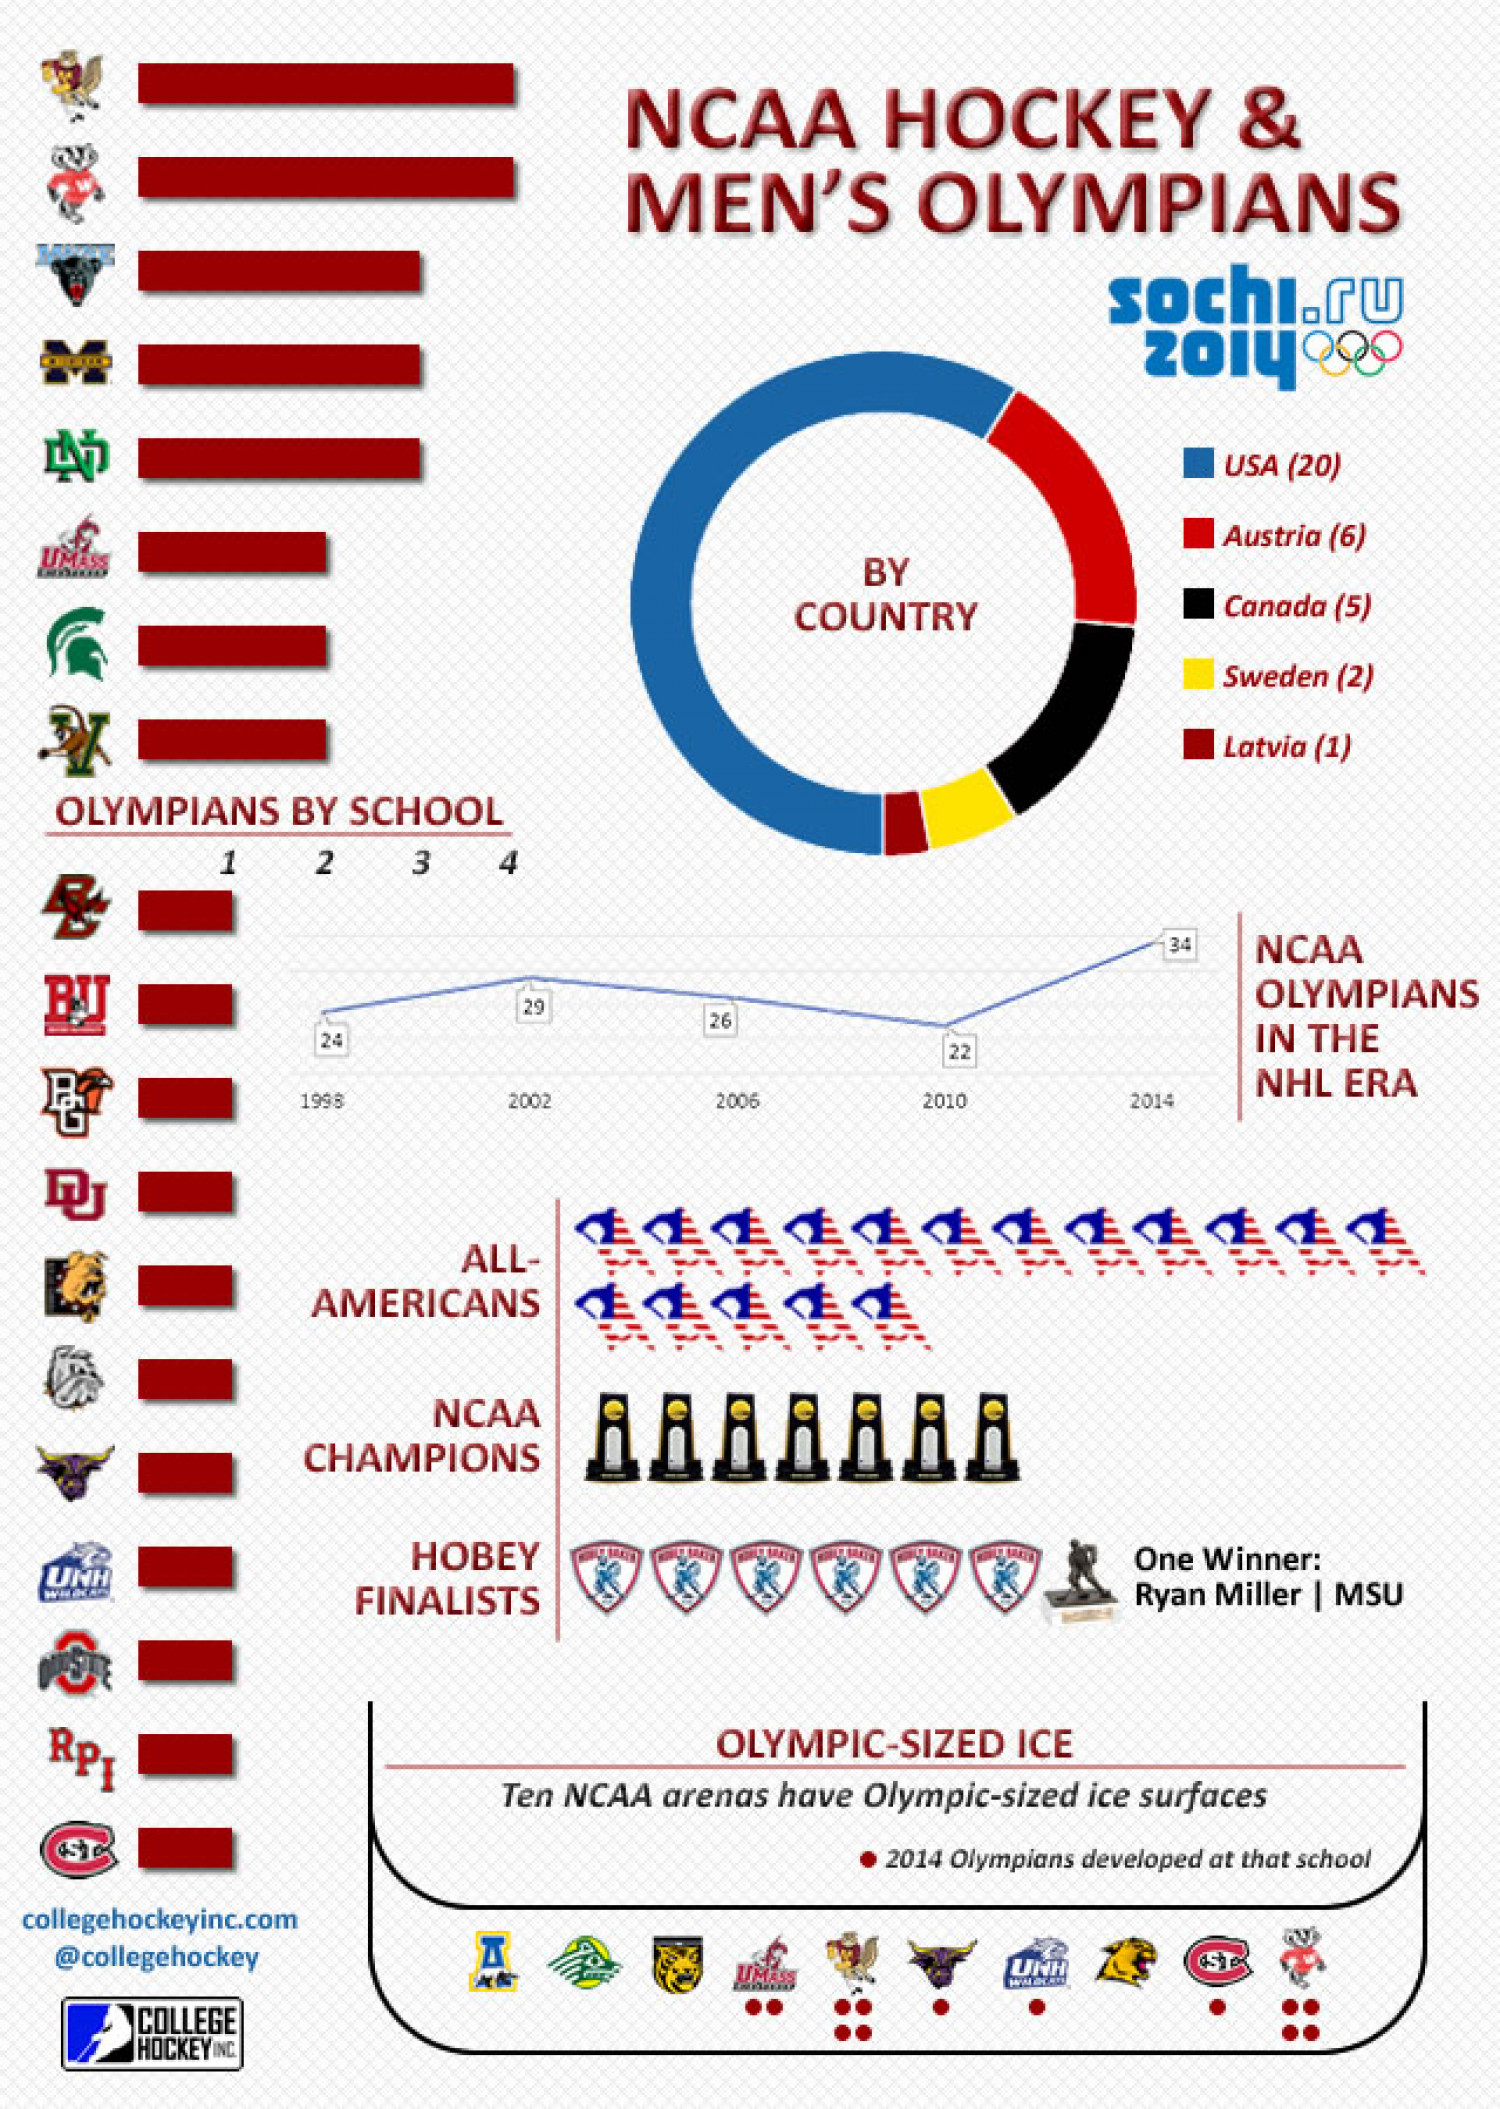 NCAA Hockey & Men's Olympians Infographic